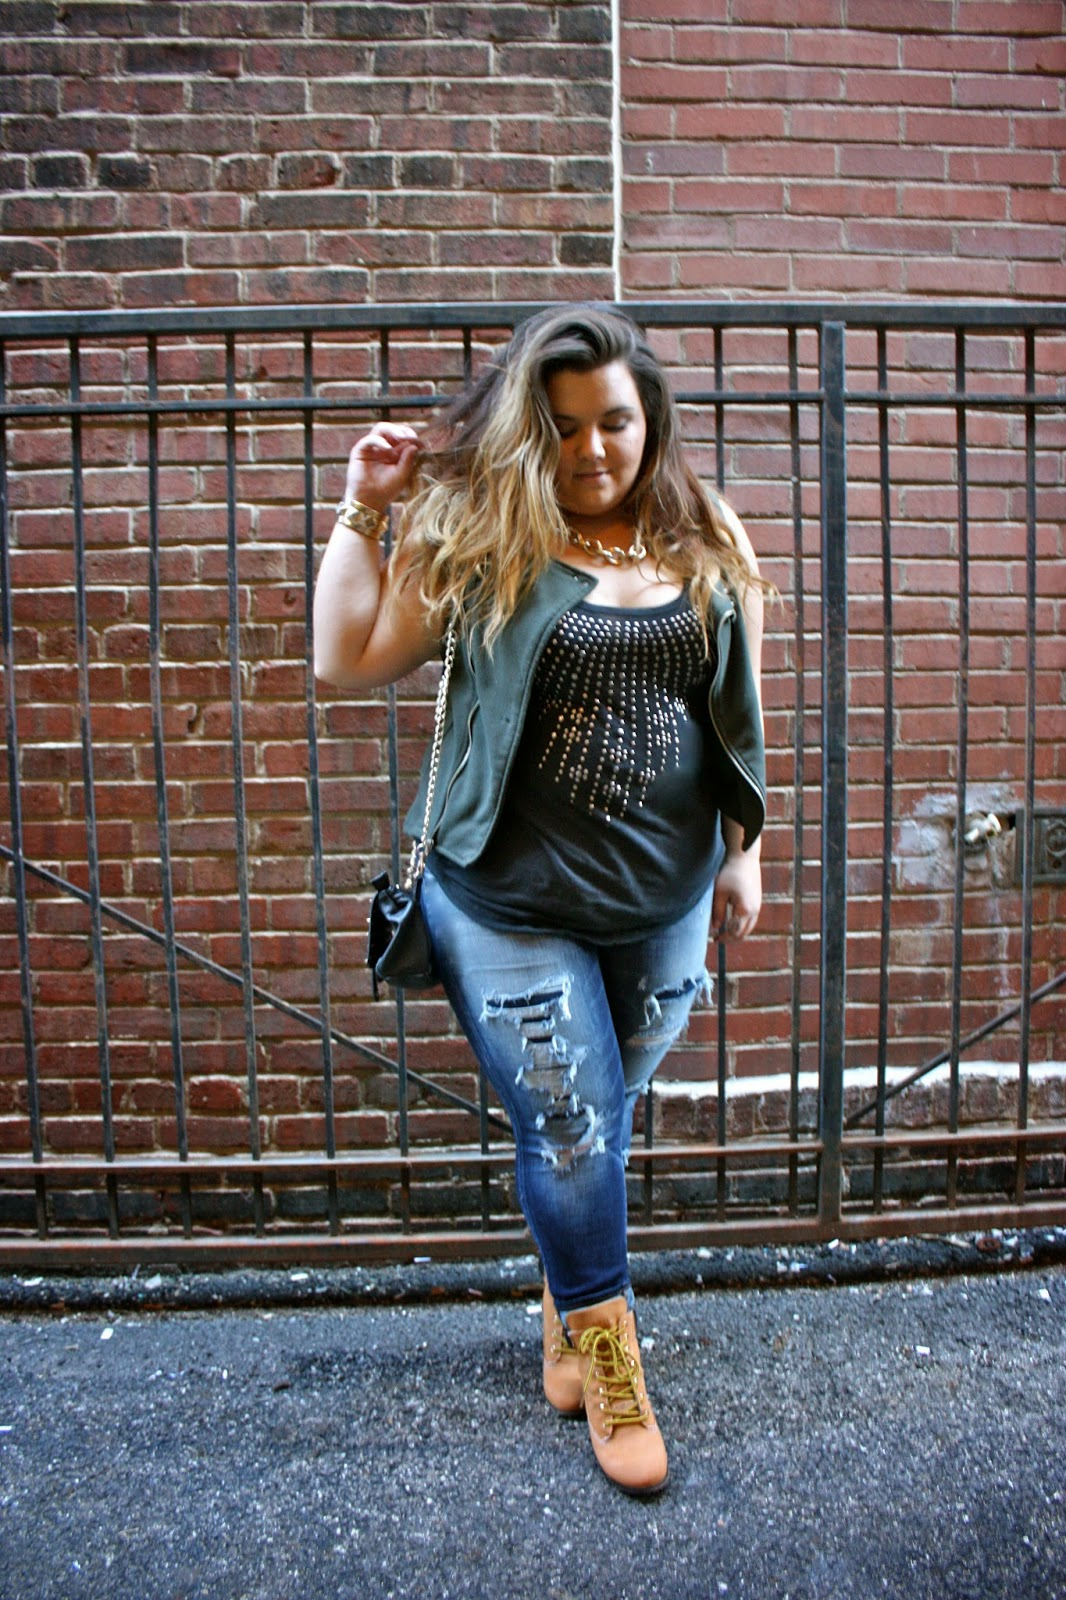 timberlands, curvy girl, thick chicks, plus size fashion, plus size fashion blogger, fashion blogger, destroyed denim, American Eagle, Ripped jeans, studs, gold chain, Natalie Craig, Natalie in the city, rock & candy shoes, timberland heels, fat fashion, curvy, chicago, alley photography